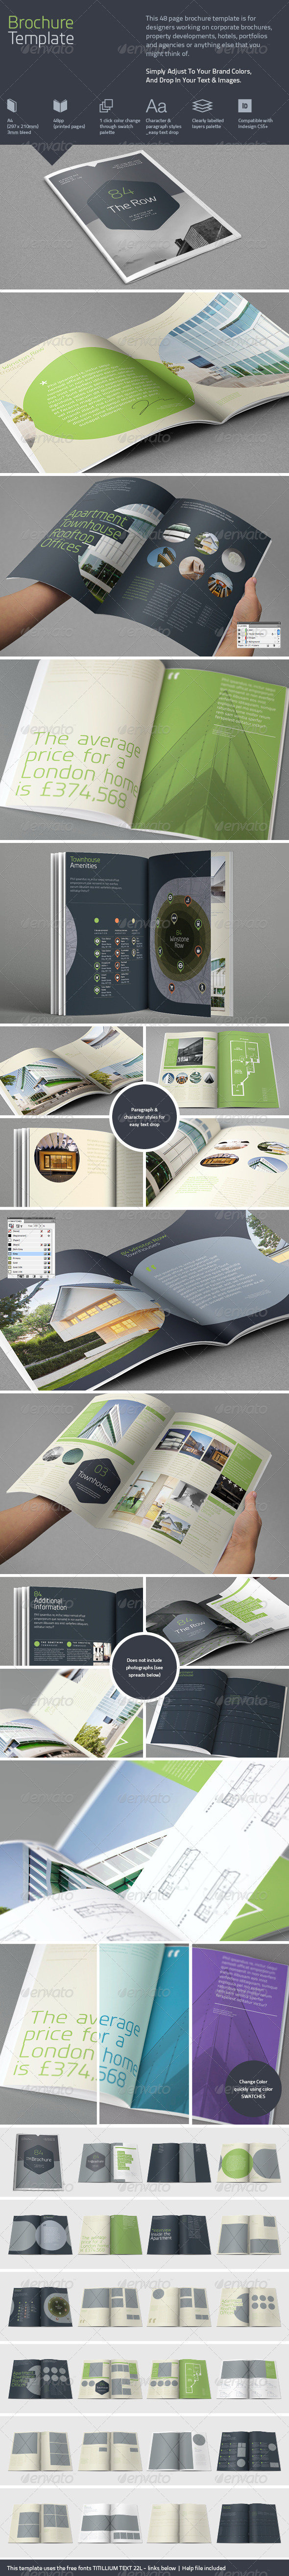 48 page brochure templates